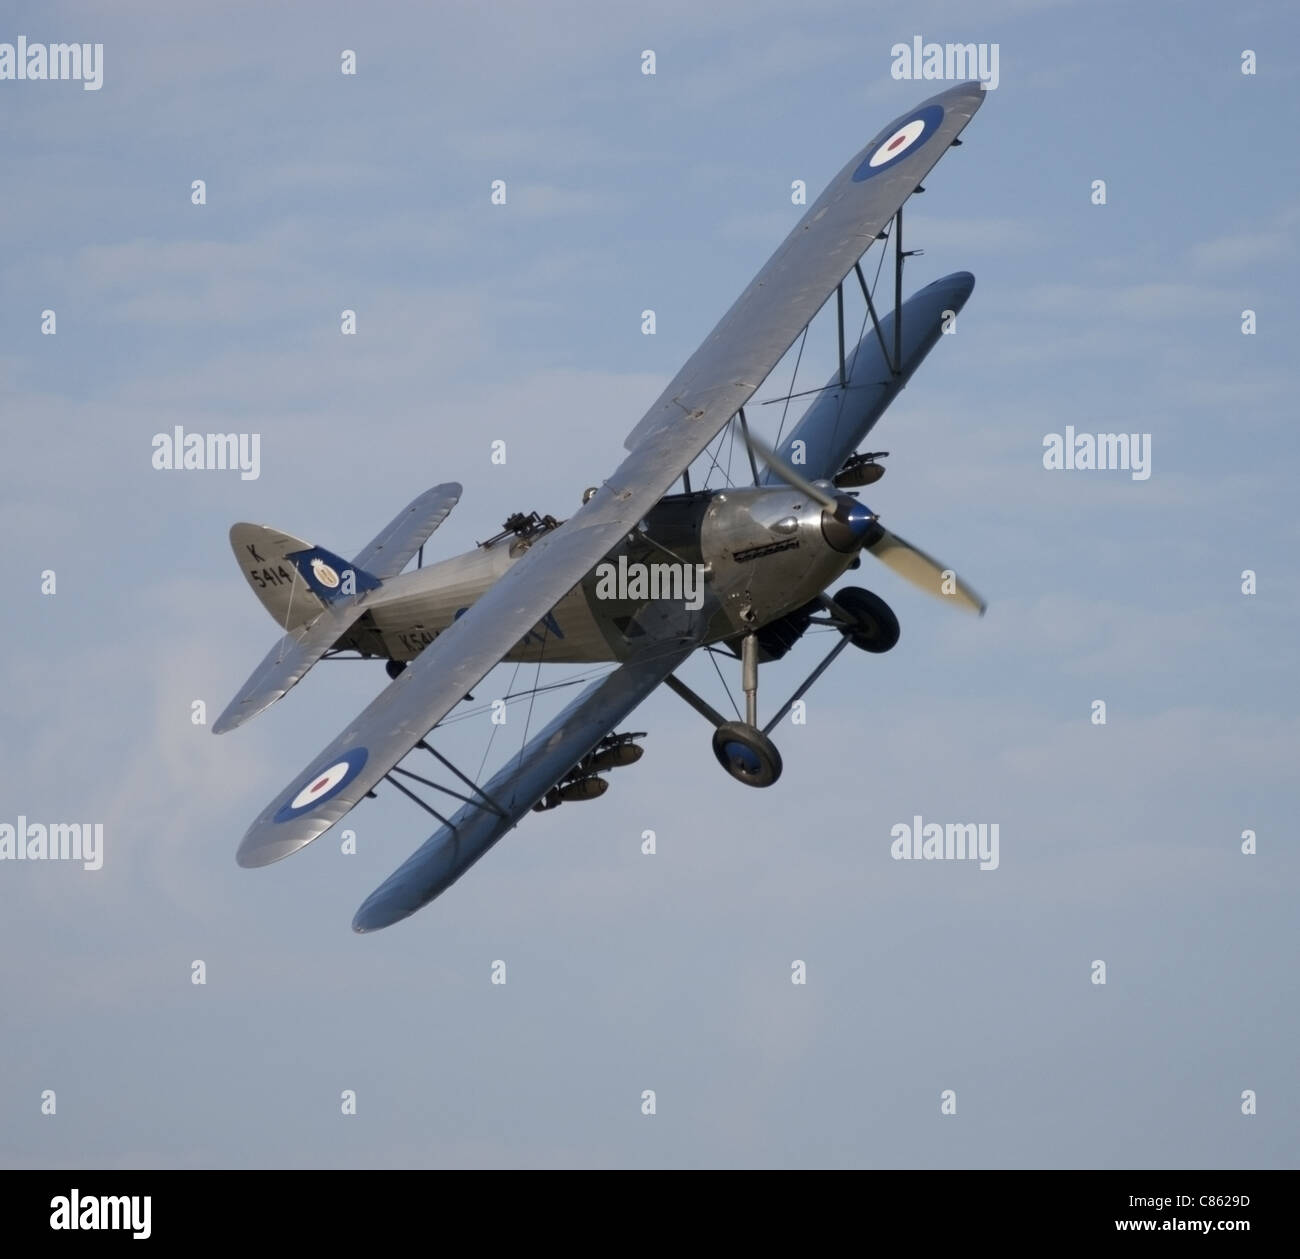 K5414 Hawker Hind bomber - Stock Image